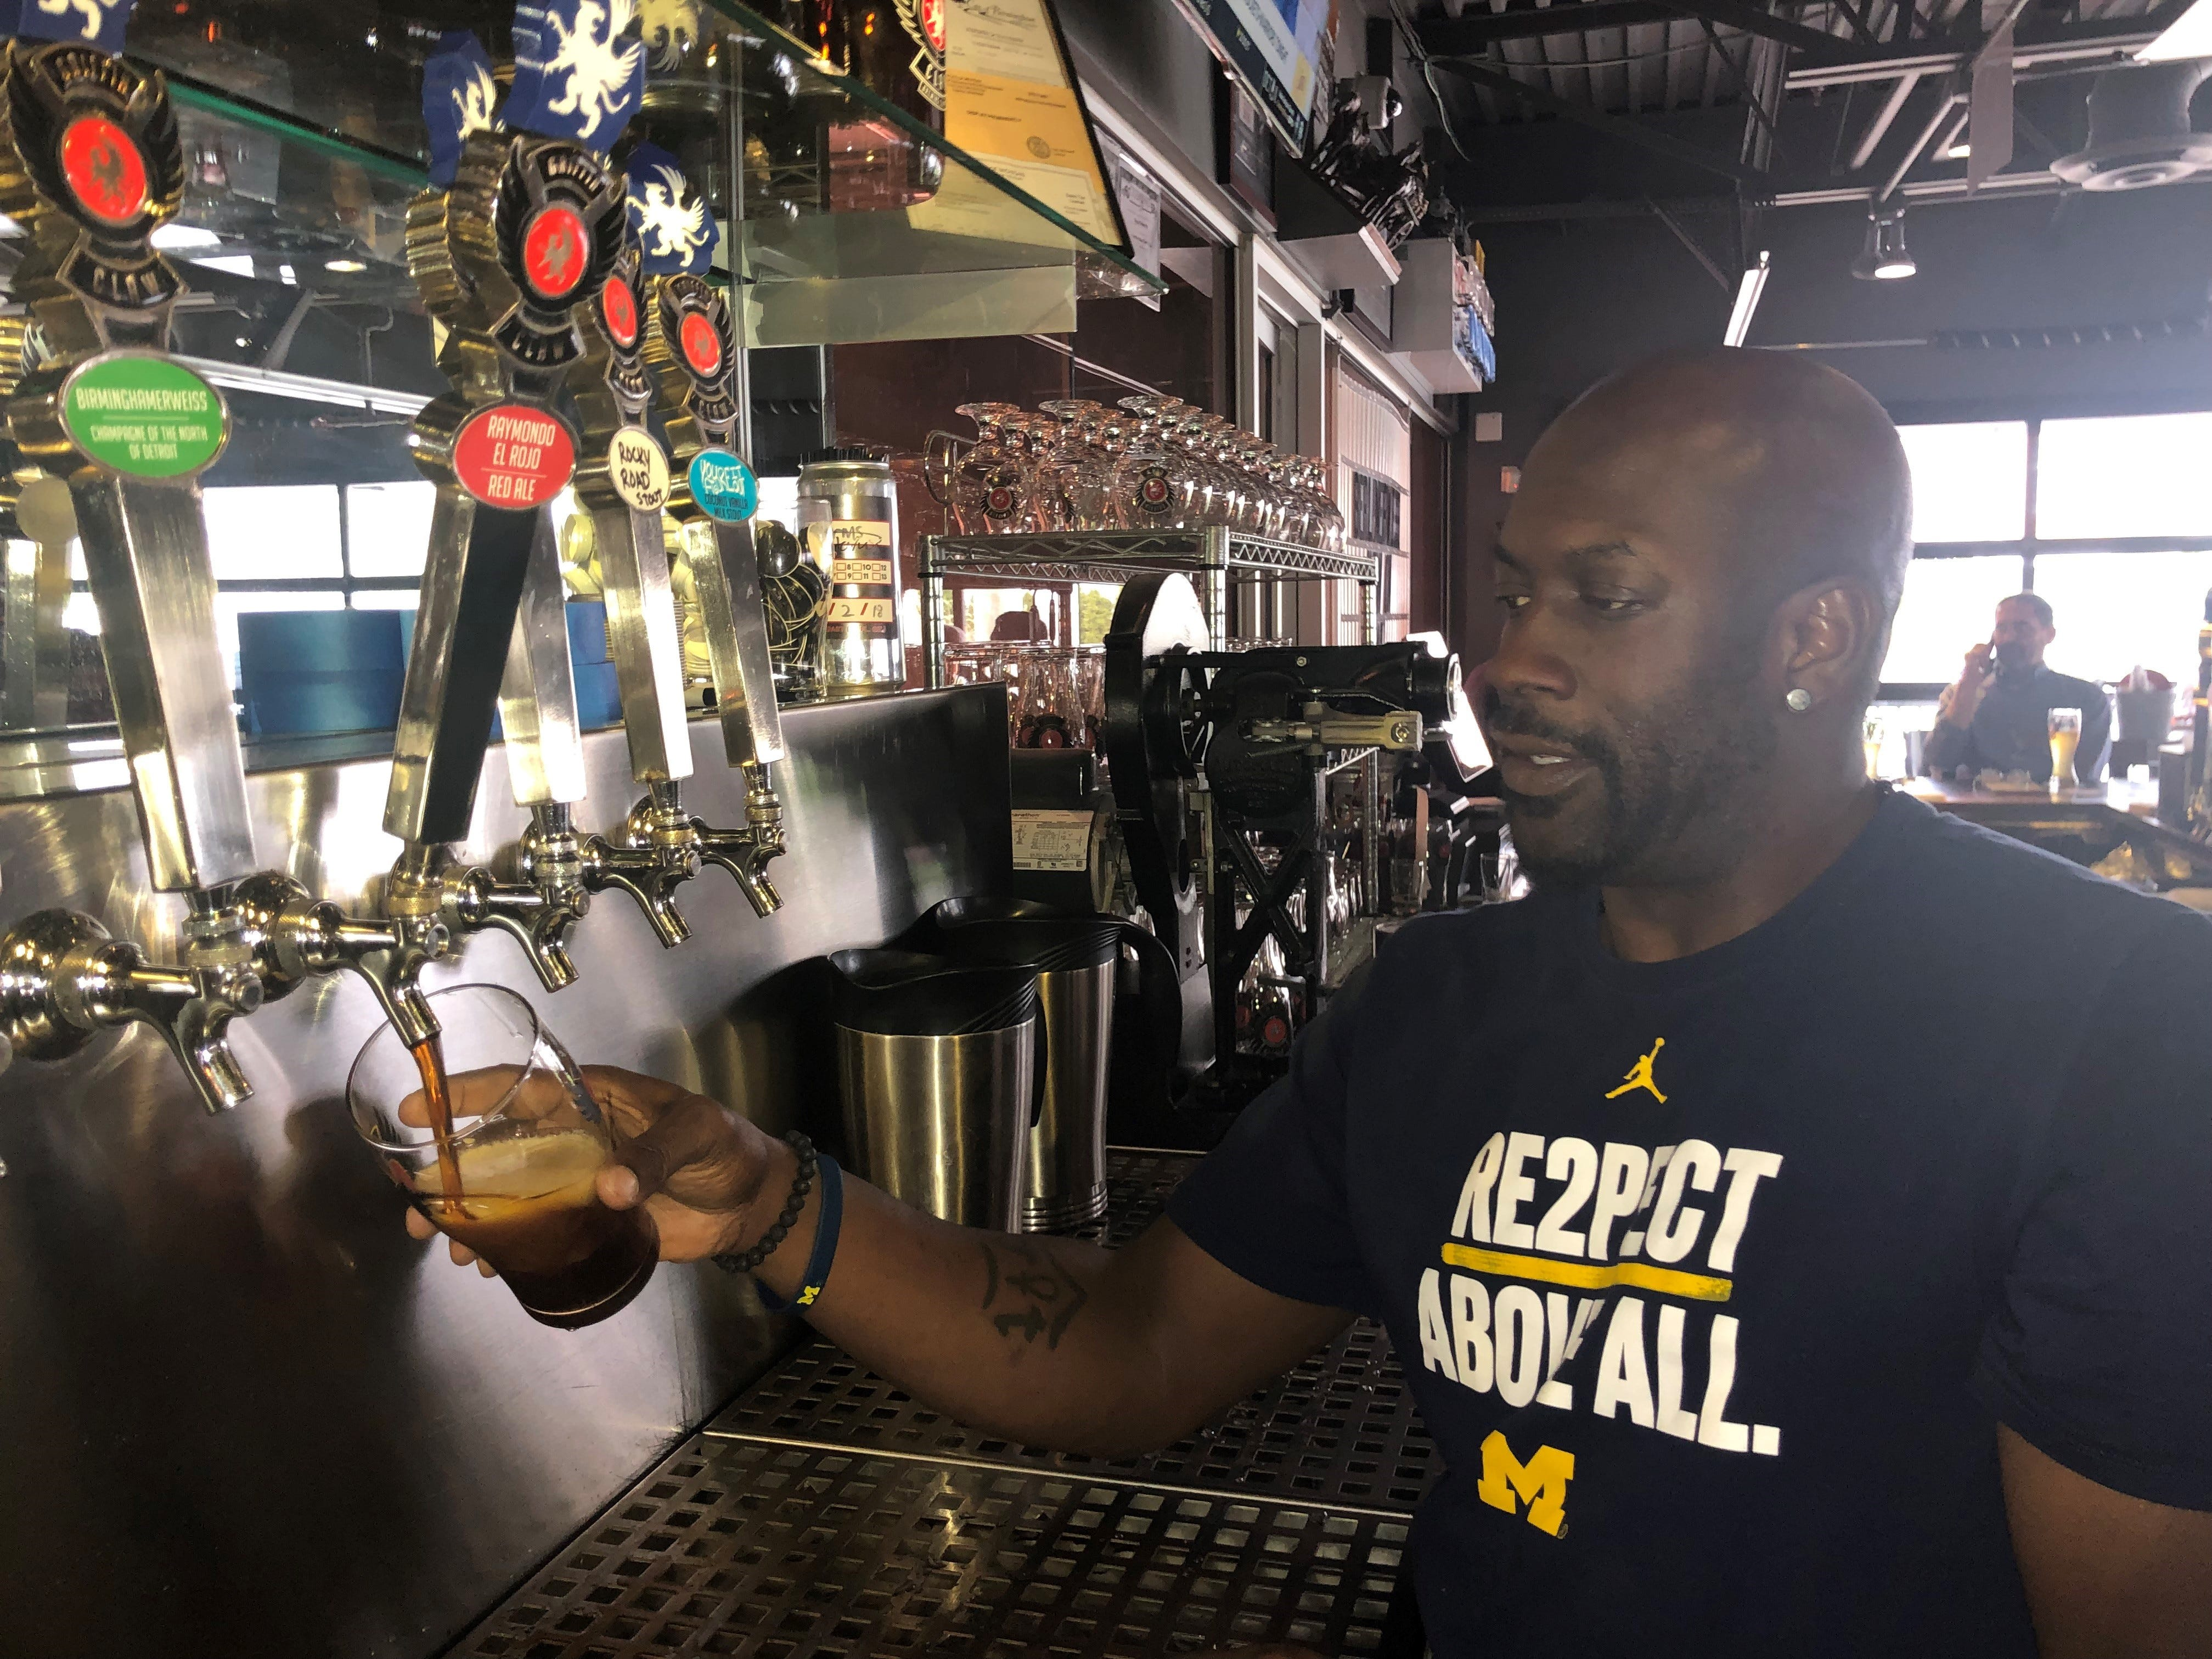 Damon Works, Griffin Claw bartender, pours an El Rojo, a red ale which won a gold medal at the 2019 World Expo of Beer competition.